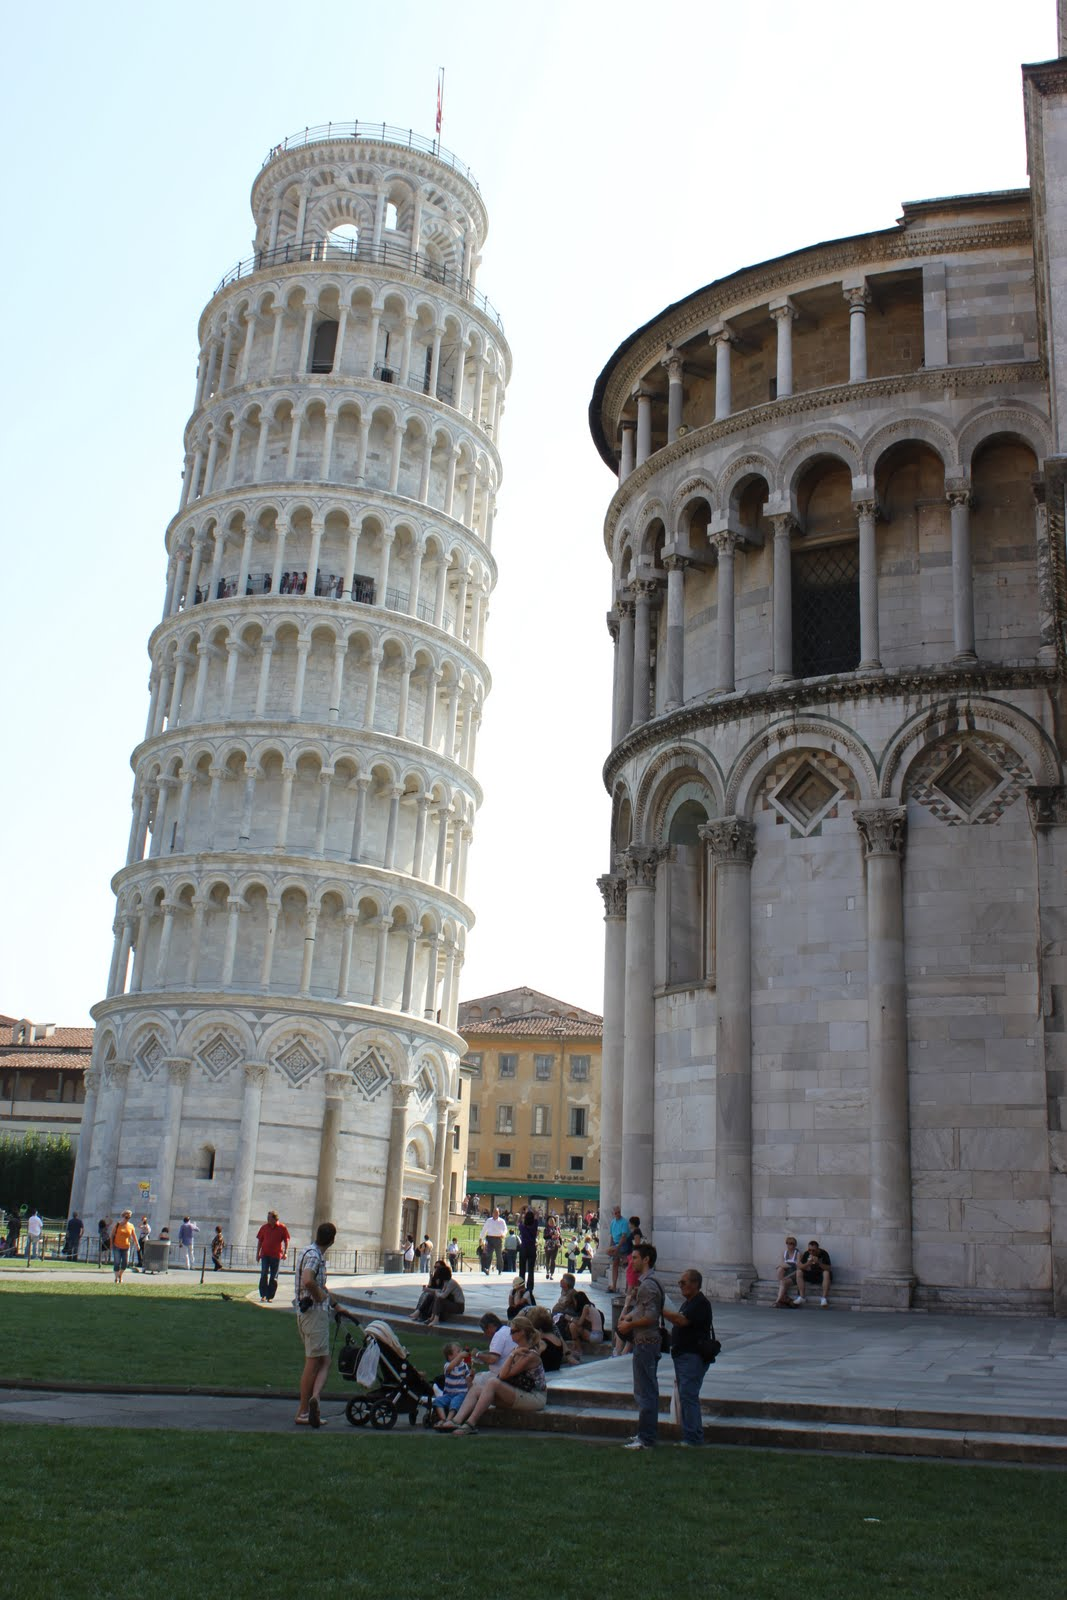 Leaning tower of pisa at tuscany italy lense moments - Leaning tower of pisa ...